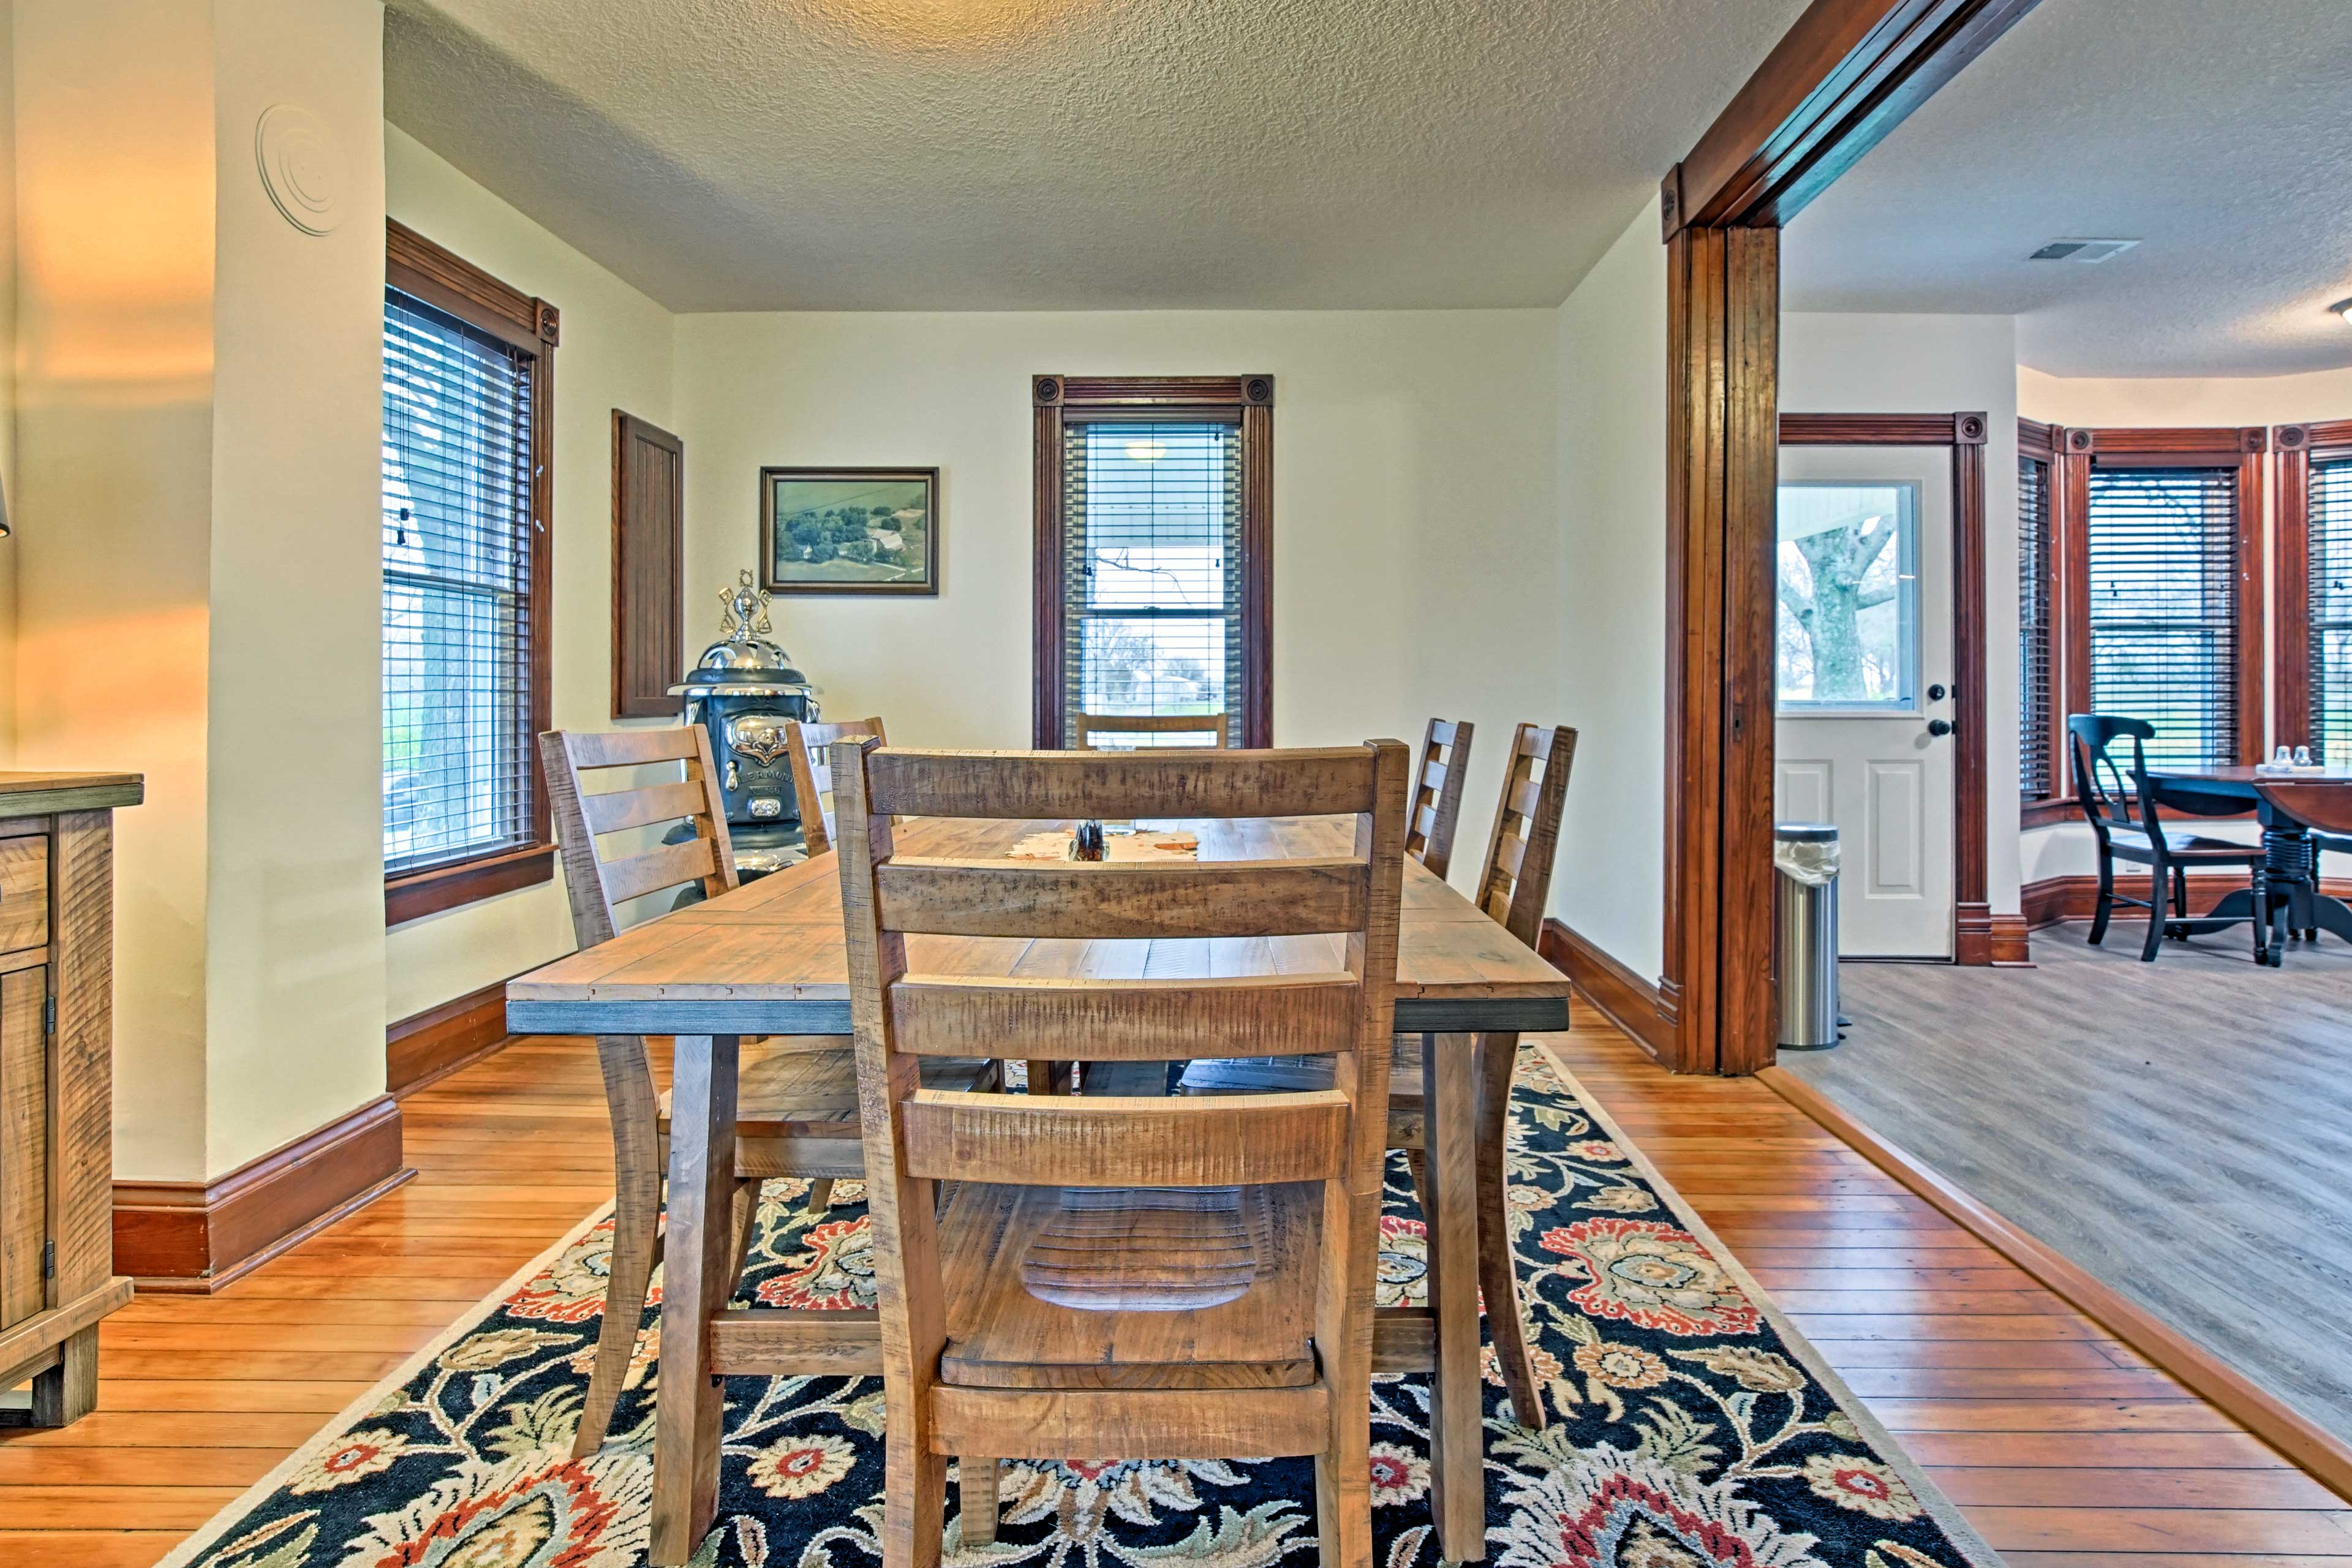 Savor homemade meals around this 6-person dining table.